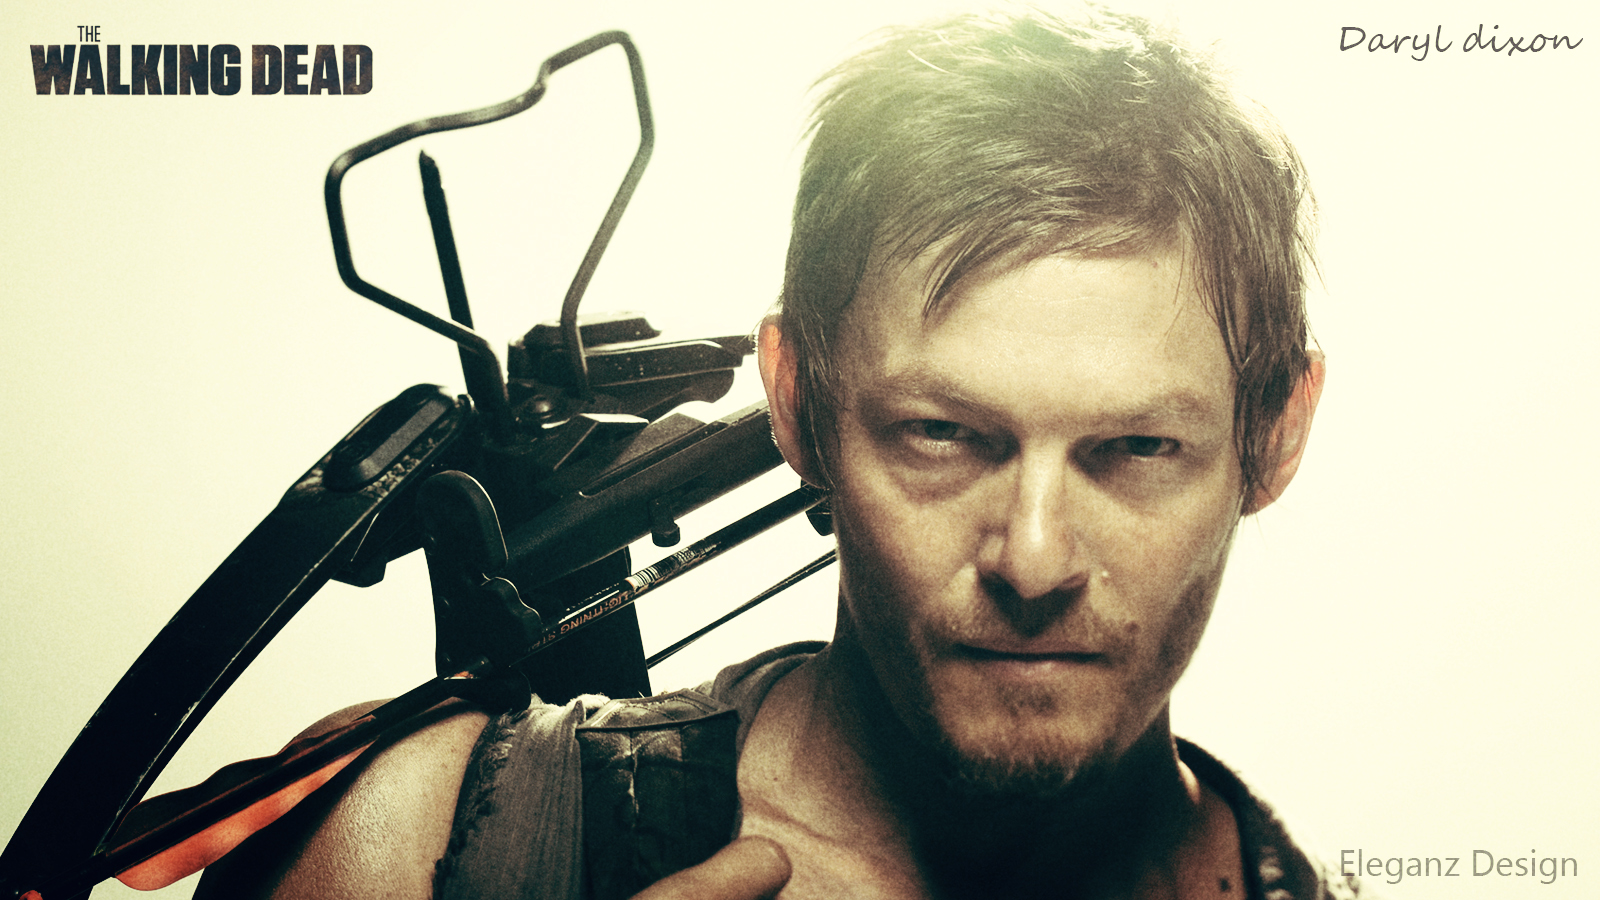 Daryl Dixon (The walking dead) Wallpaper by EleganzDesign